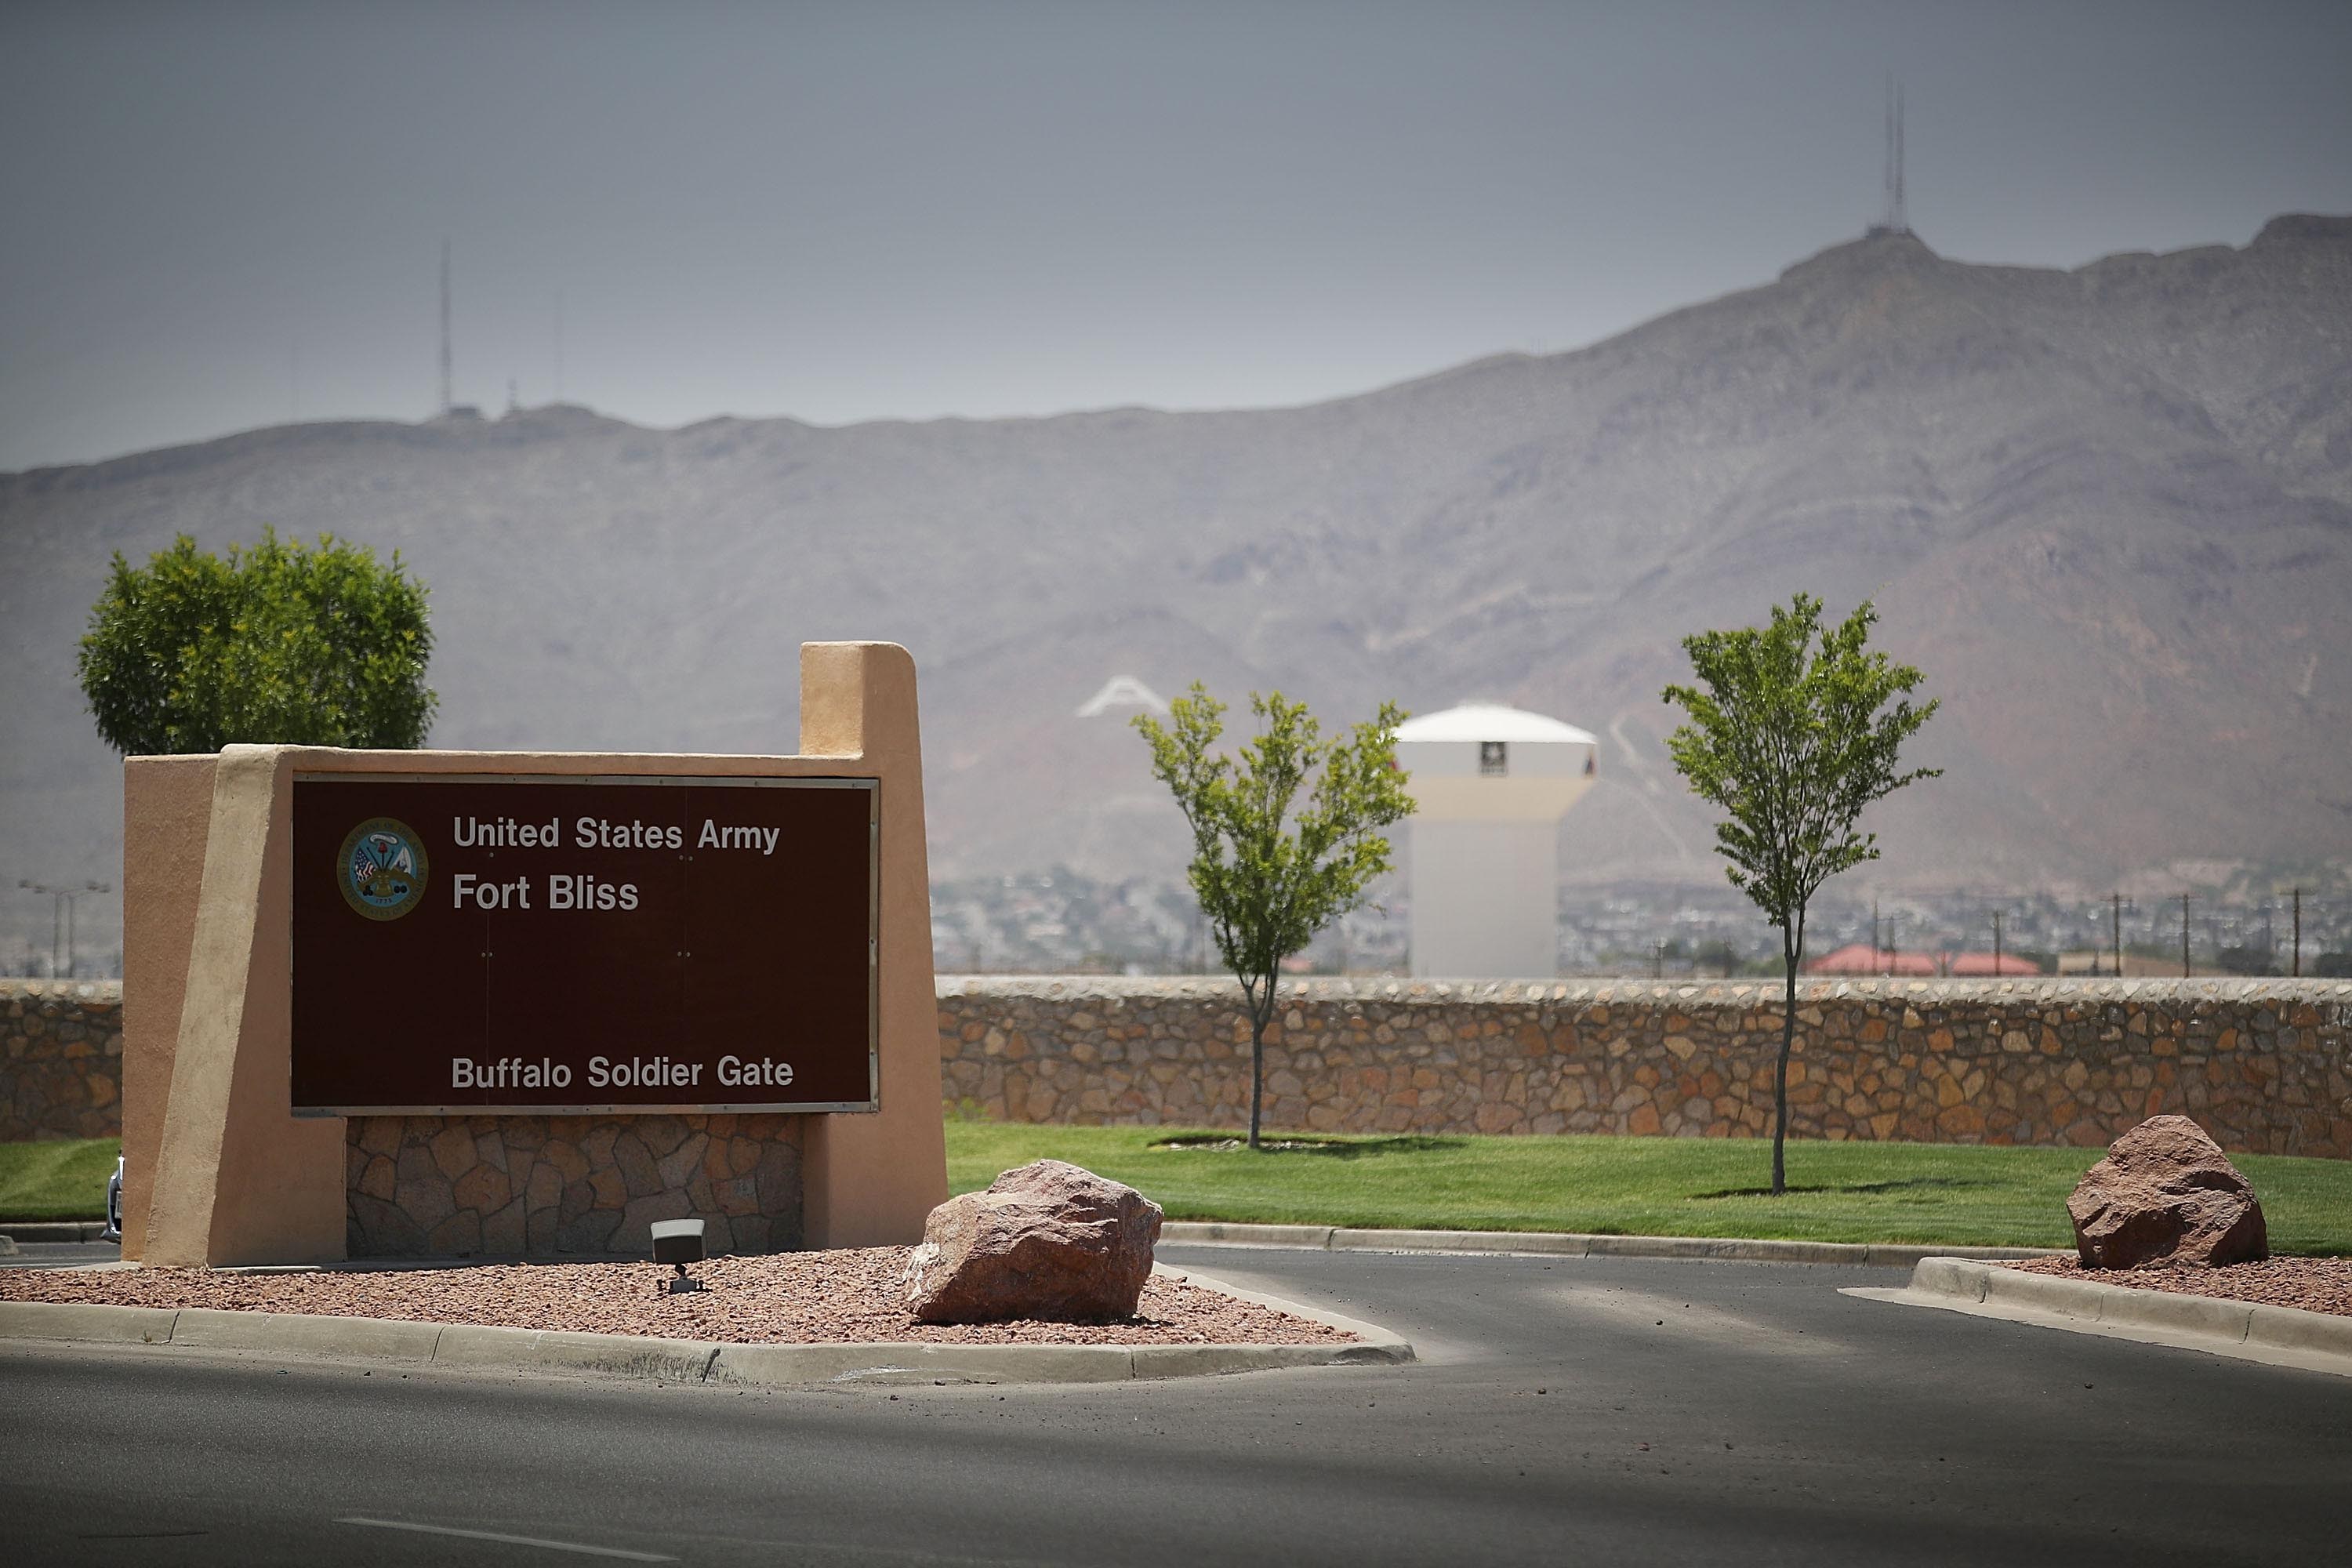 'Every day, I feel really sad': Migrant children still in temporary sites for prolonged periods, attorneys say